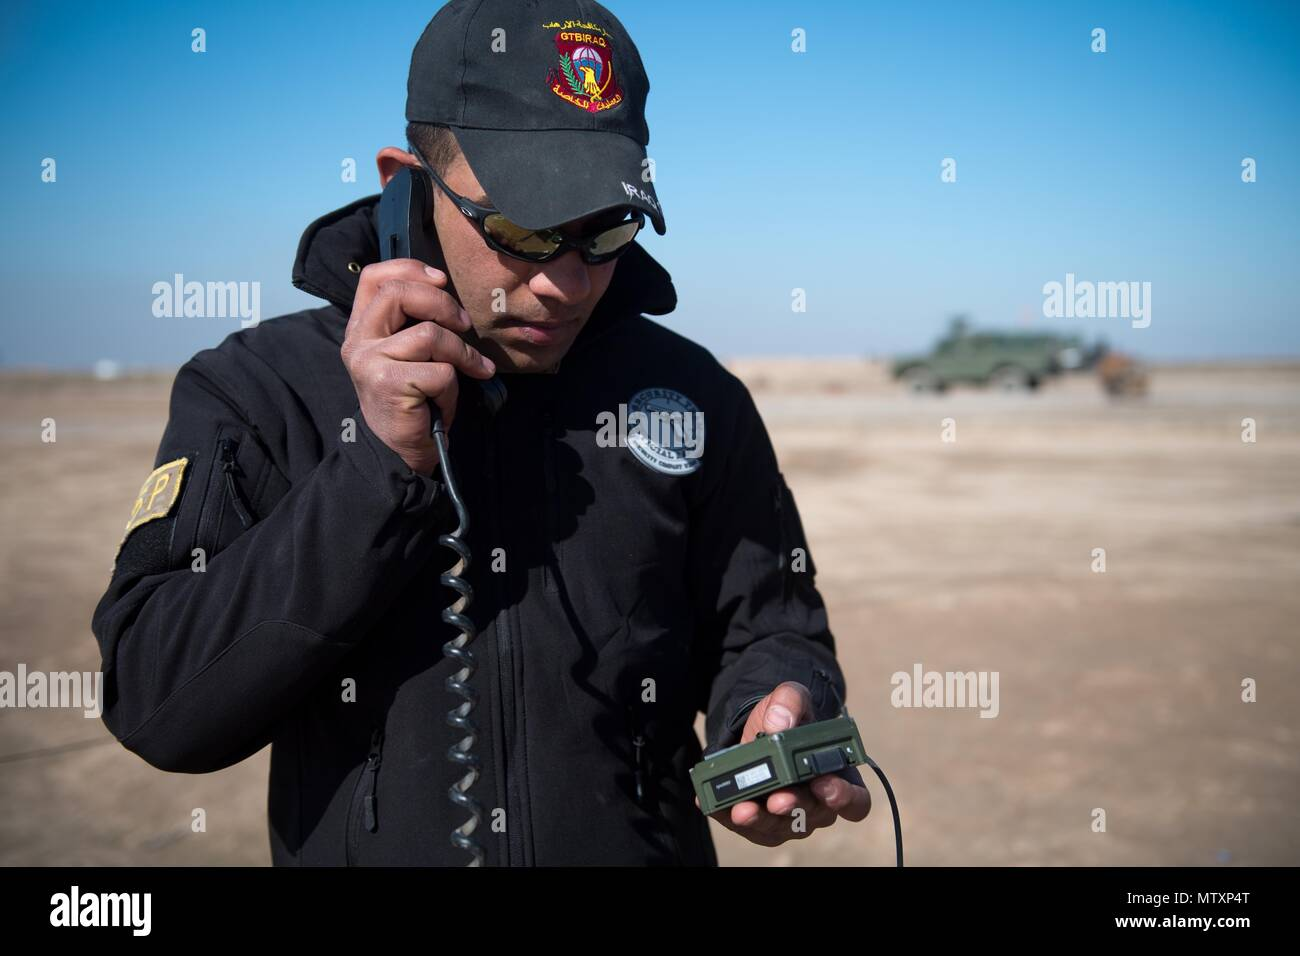 An Iraqi Counter-Terrorism Service trainee conducts high frequency communications training near Baghdad, Iraq, Jan. 30, 2017. ICTS is Iraq's elite counter-terrorism force and has proven to be an effective fighting force against ISIL. This training is part of the overall Combined Joint Task Force – Operation Inherent Resolve building partner capacity mission to increase the capabilities of partnered forces fighting ISIL. CJTF-OIR is the global Coalition to defeat ISIL in Iraq and Syria. (U.S. Army photo by Staff Sgt. Alex Manne) - Stock Image